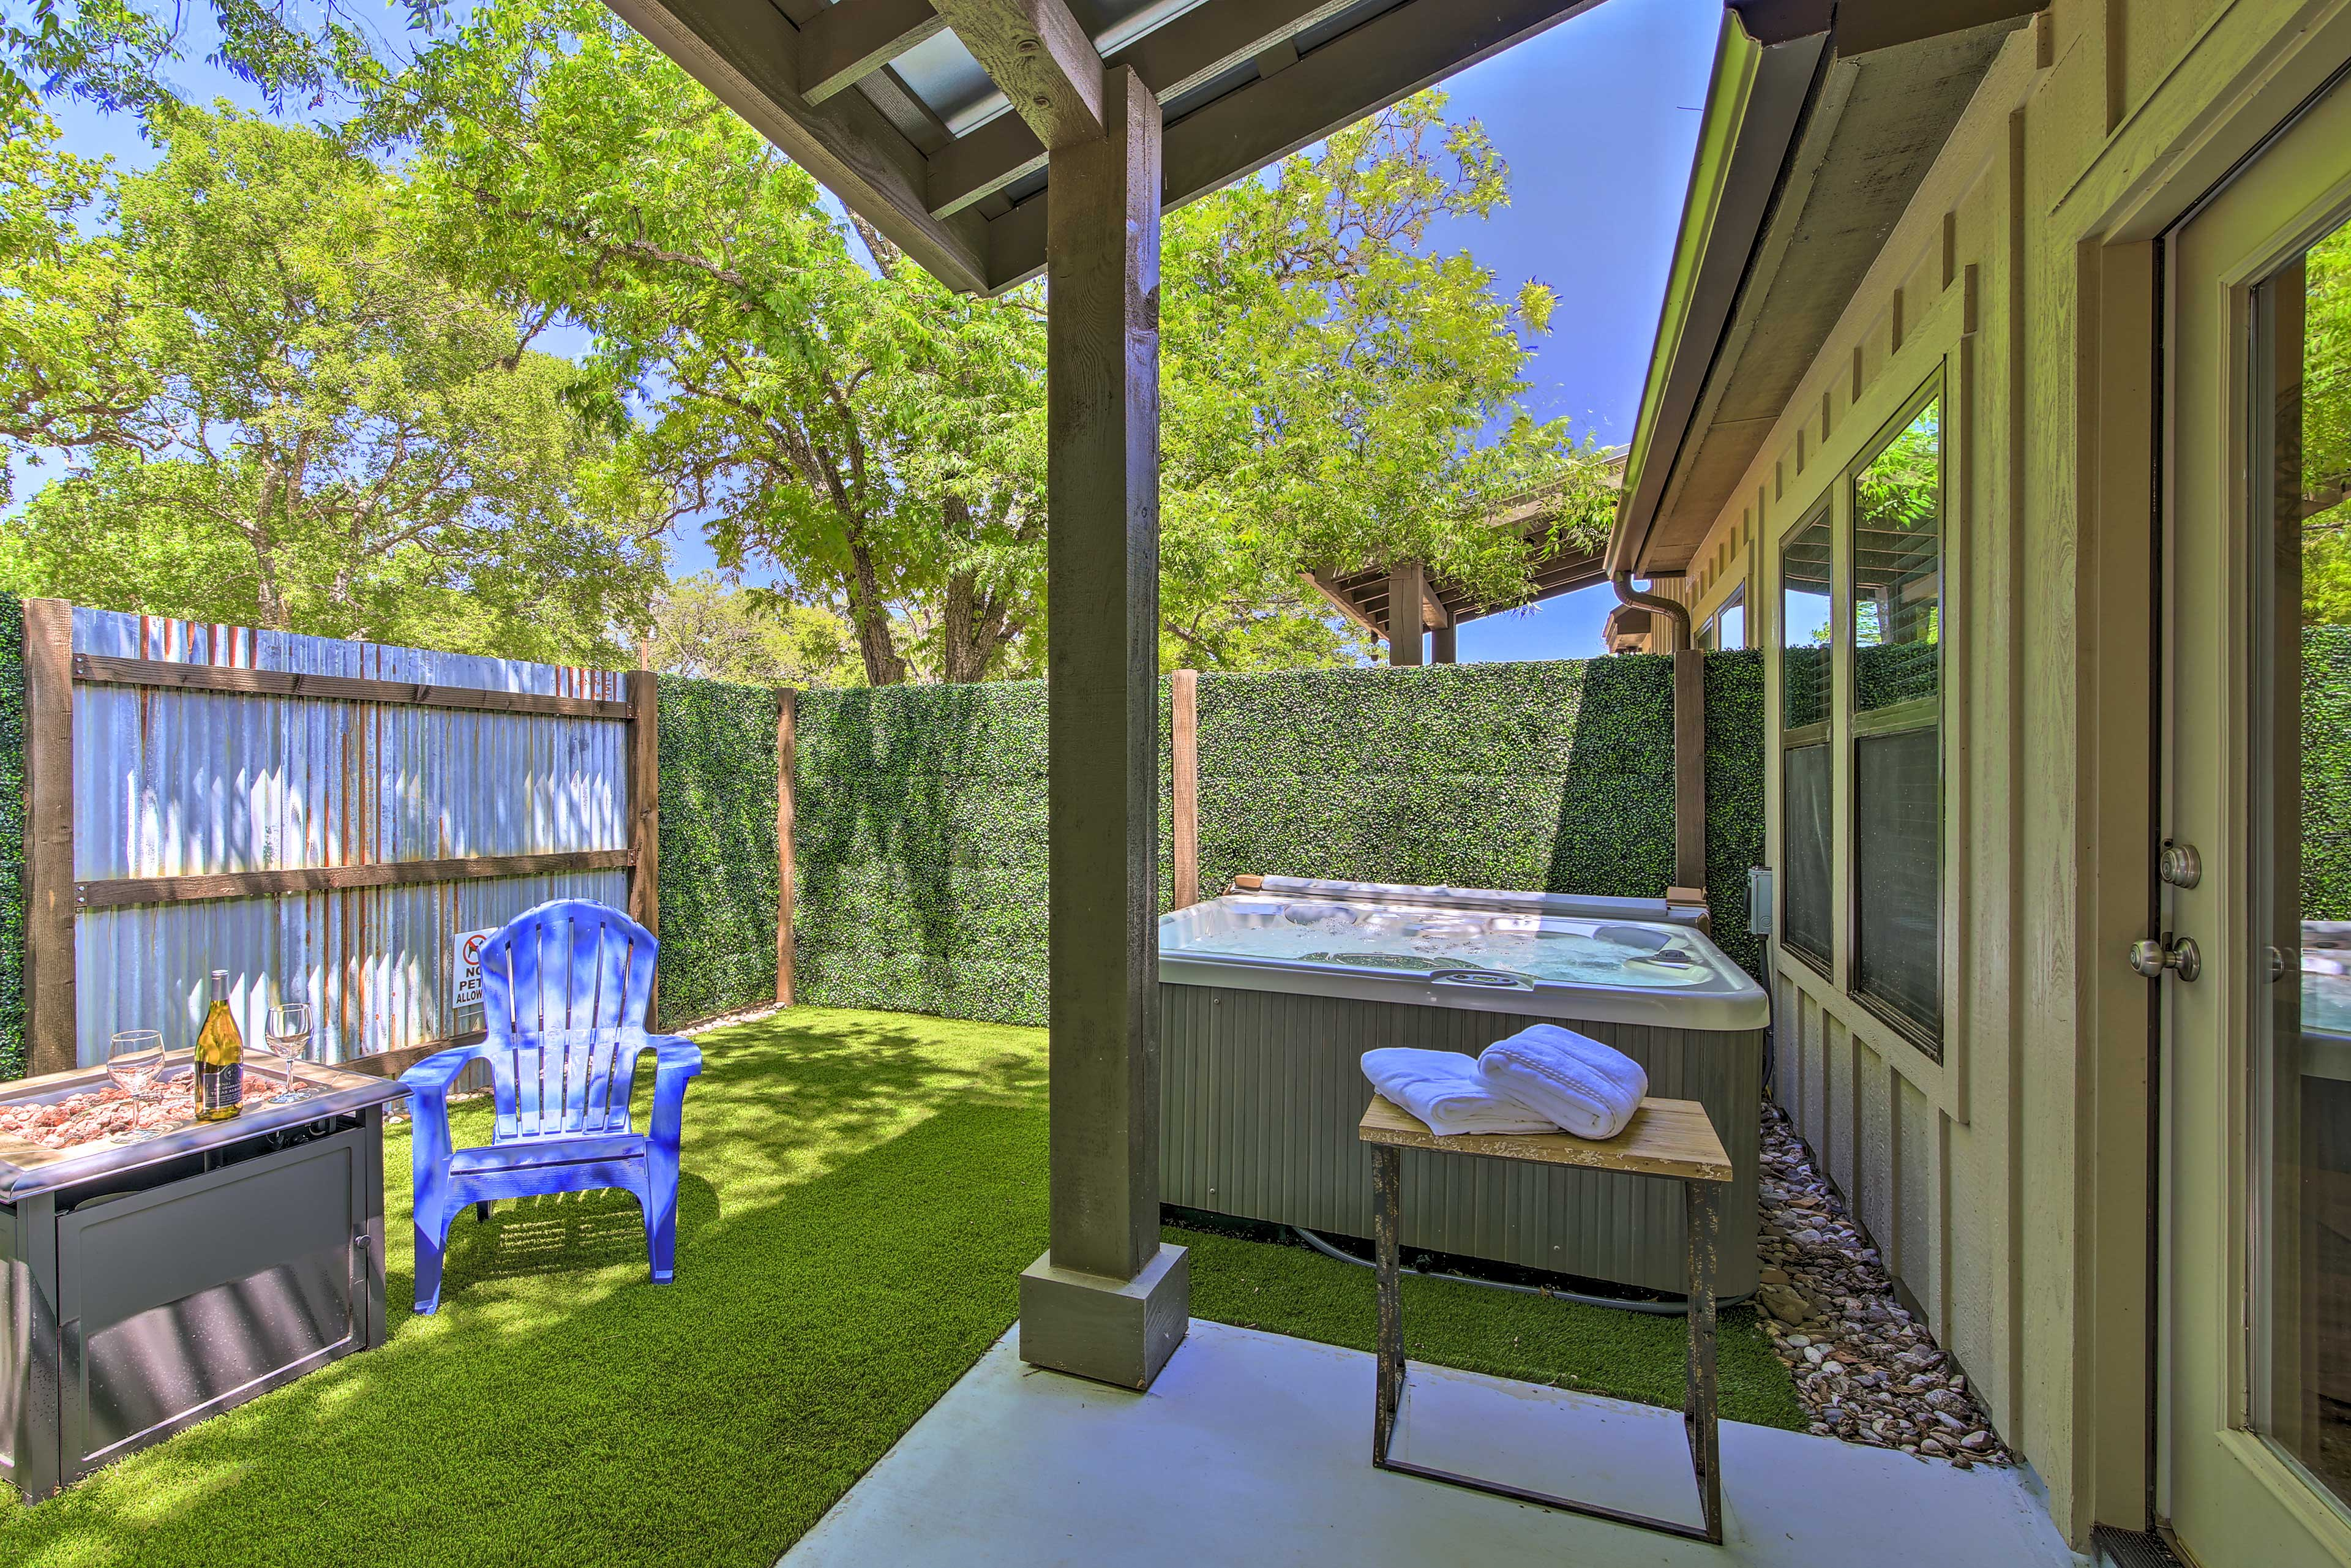 You'll have plenty of privacy in this quaint fenced-in yard.